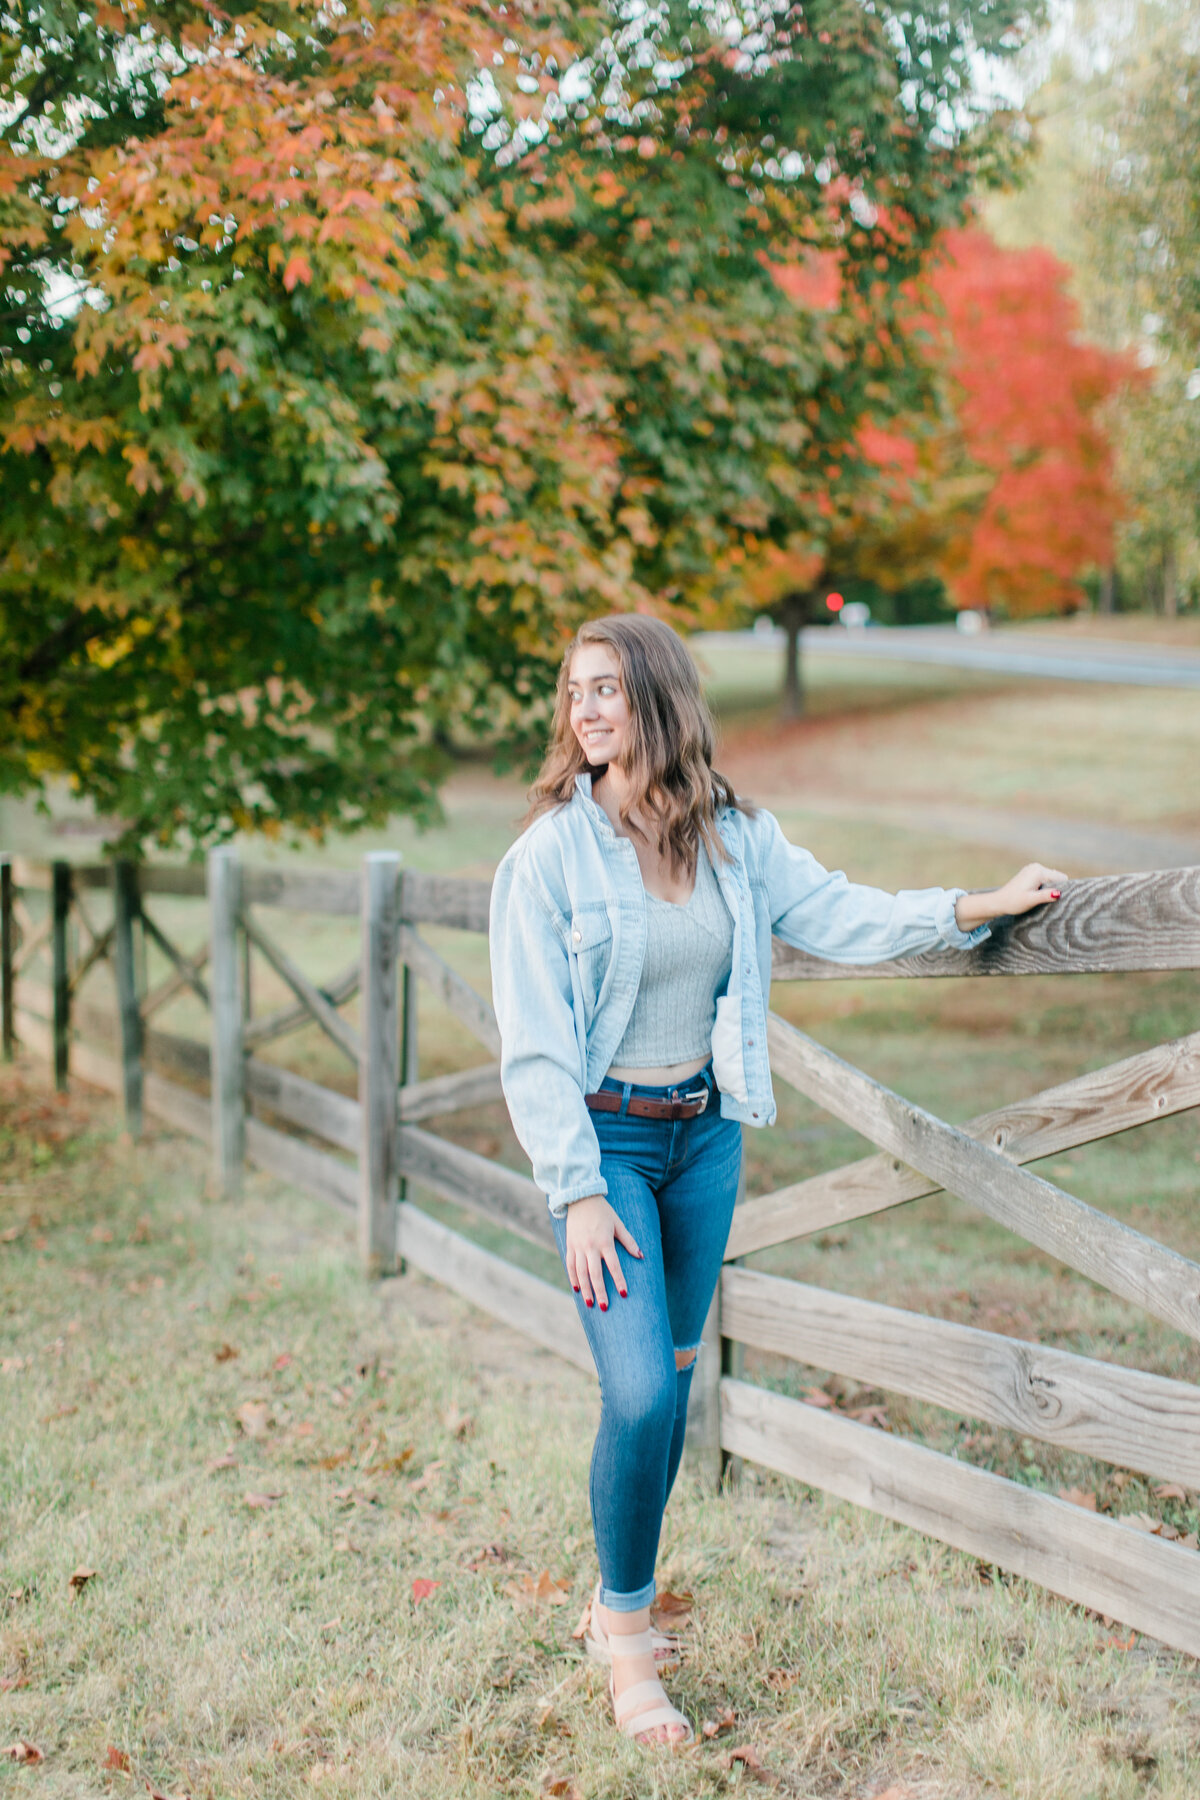 Fall_Meadowlark_Gardens_Virginia_DC_Senior_Portrait_Session_Photographer_Angelika_Johns_Photography-8920